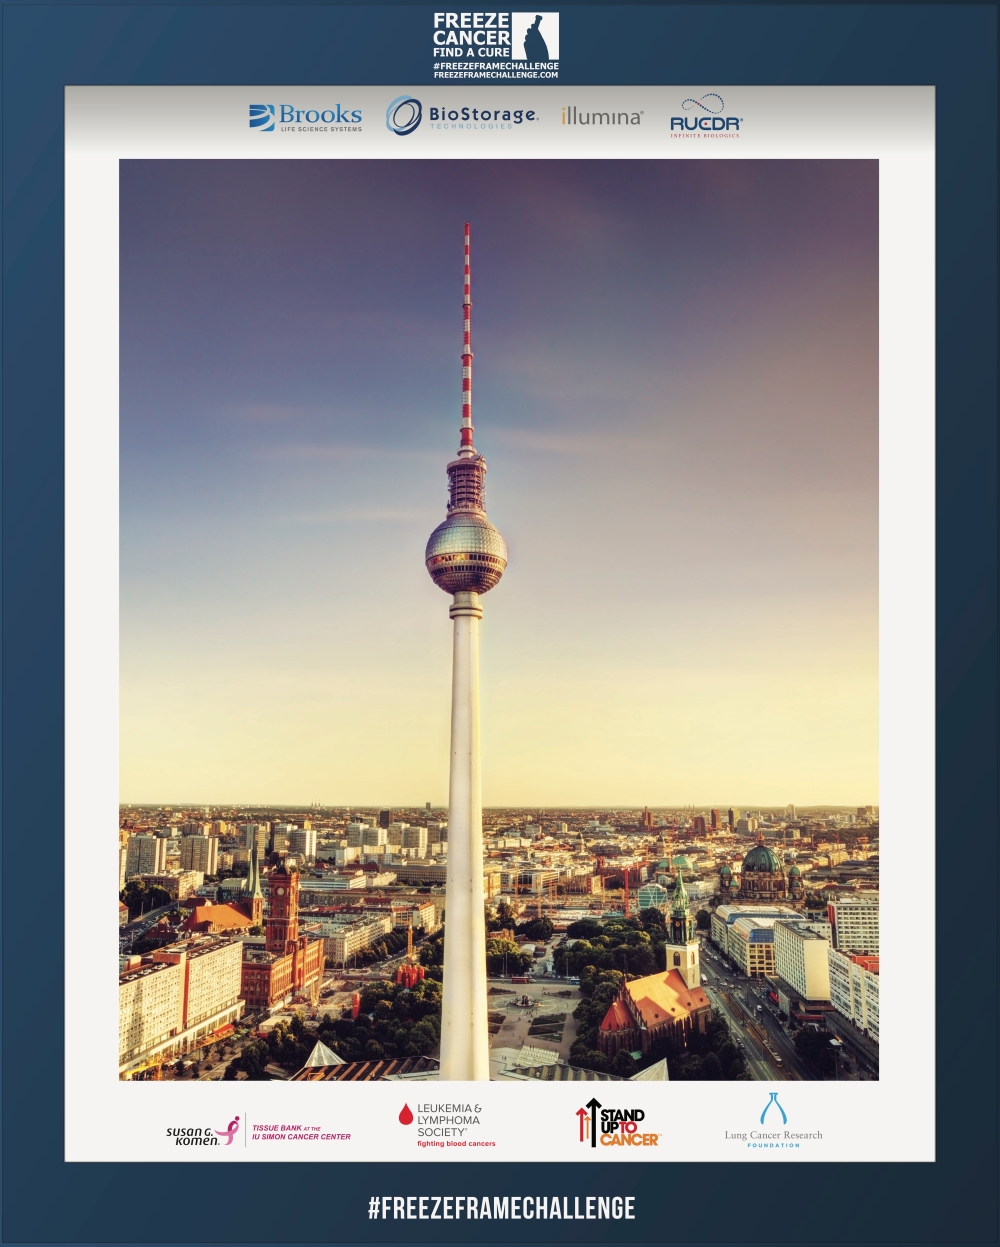 berlin-tv-tower-Pdfx-1a